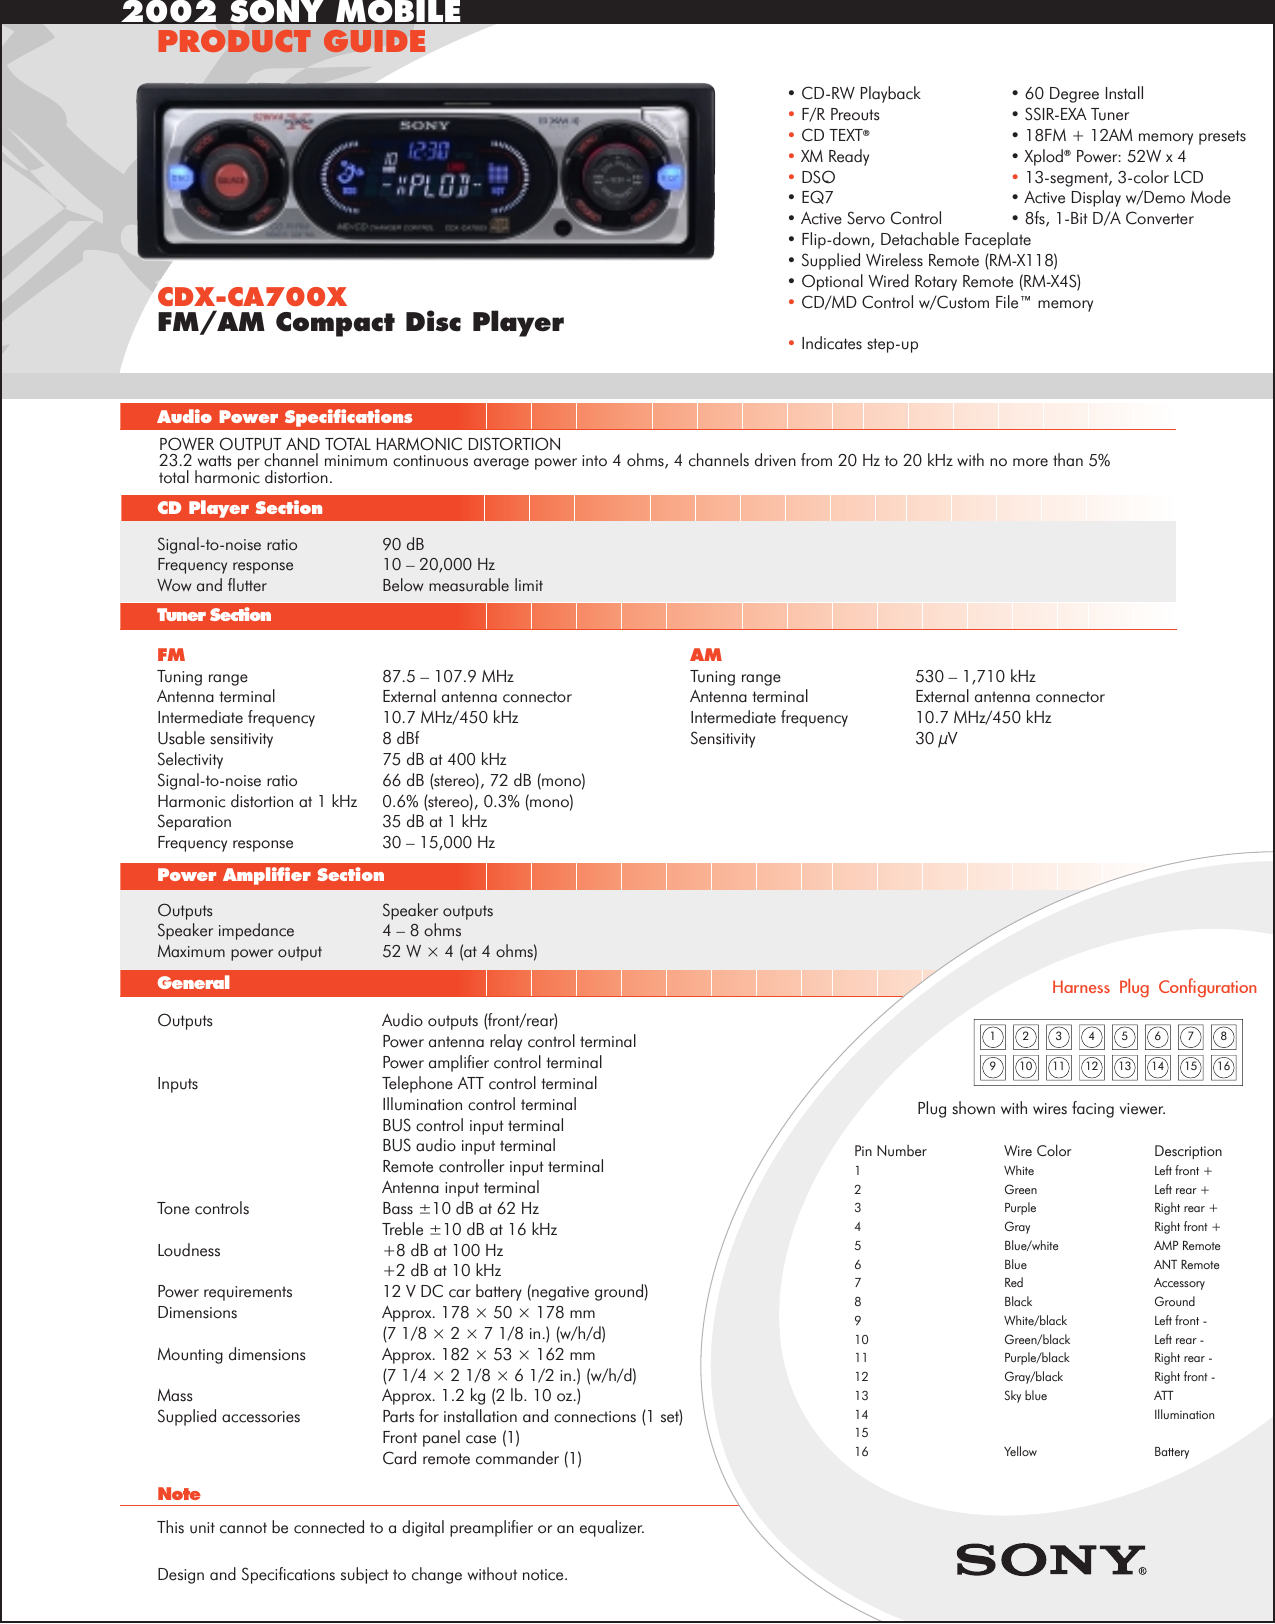 sony cdx ca700x user manual product guide specifications Sony Cdx Ca710x Wiring-Diagram